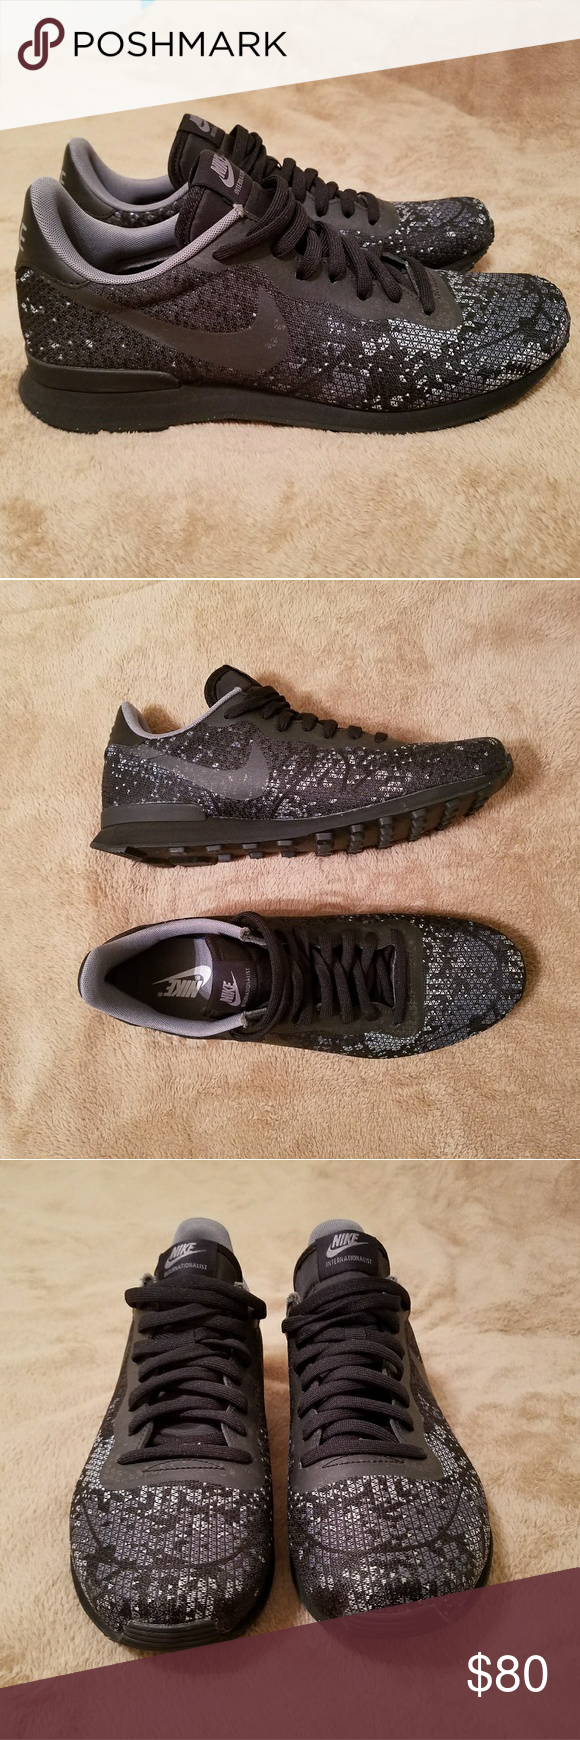 low priced b78d3 a4ad2 Nike Internationalist. Mens sz 10.5 Black and grey Very nice, super light  shoe. Comfortable and very stylish. Note- Do not hv box anymore though.